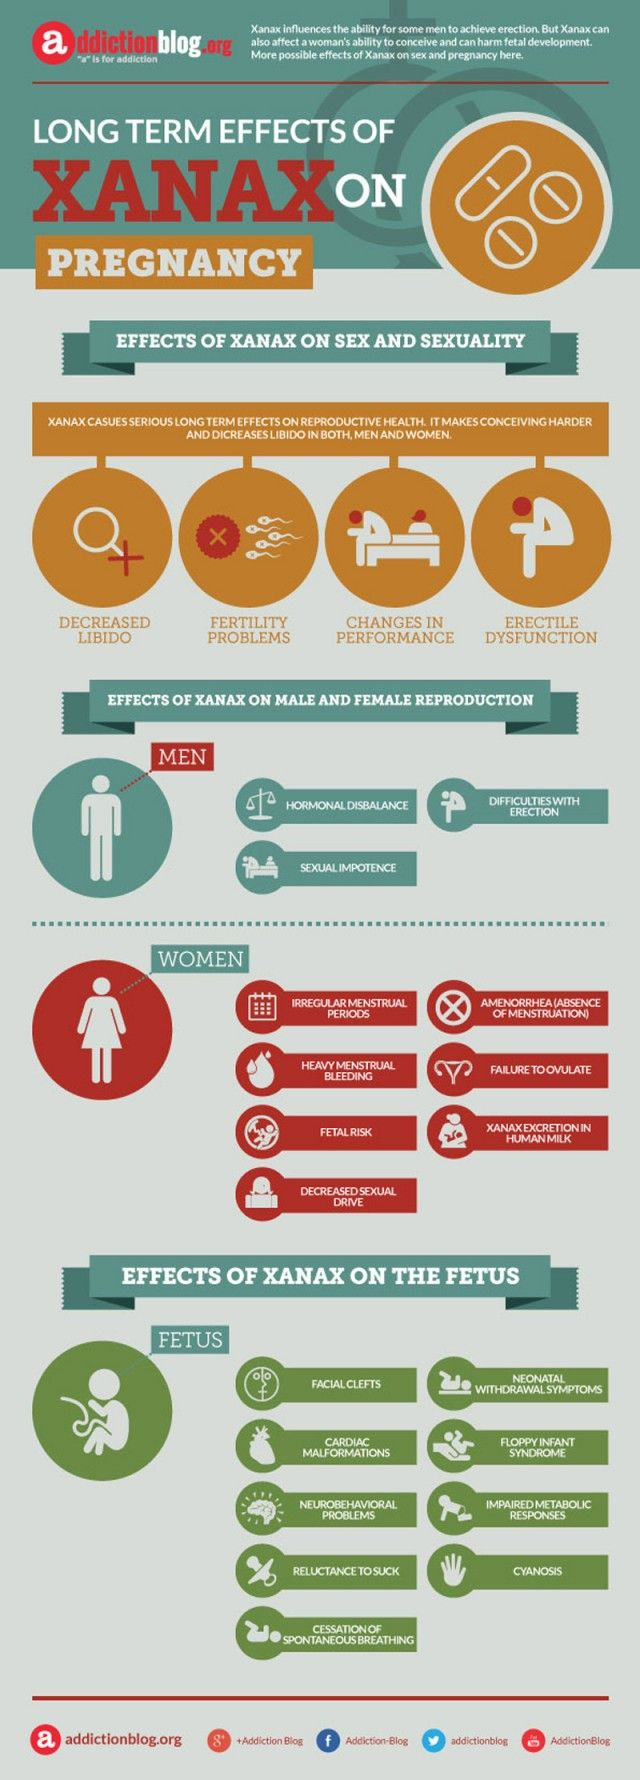 Effects of Xanax on Pregnancy.